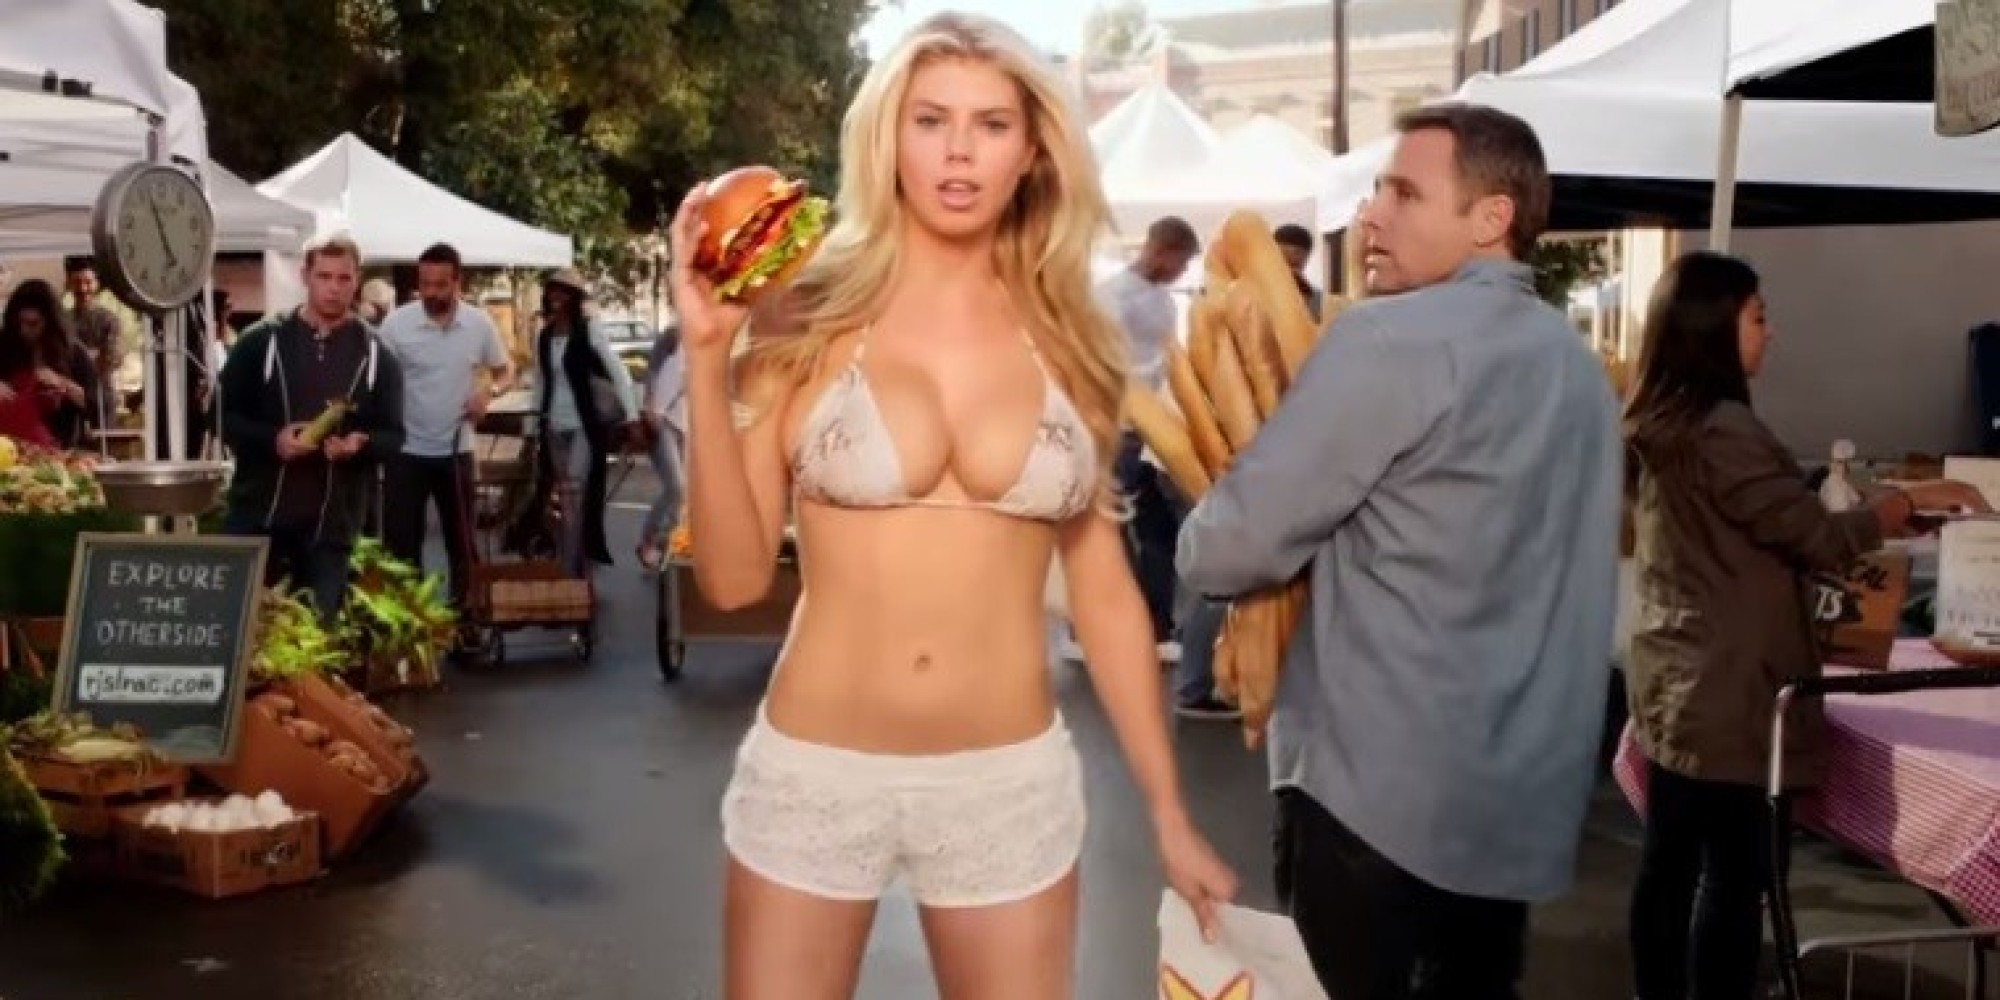 Carl's Jr. Super Bowl Commercial Features An 'All Natural